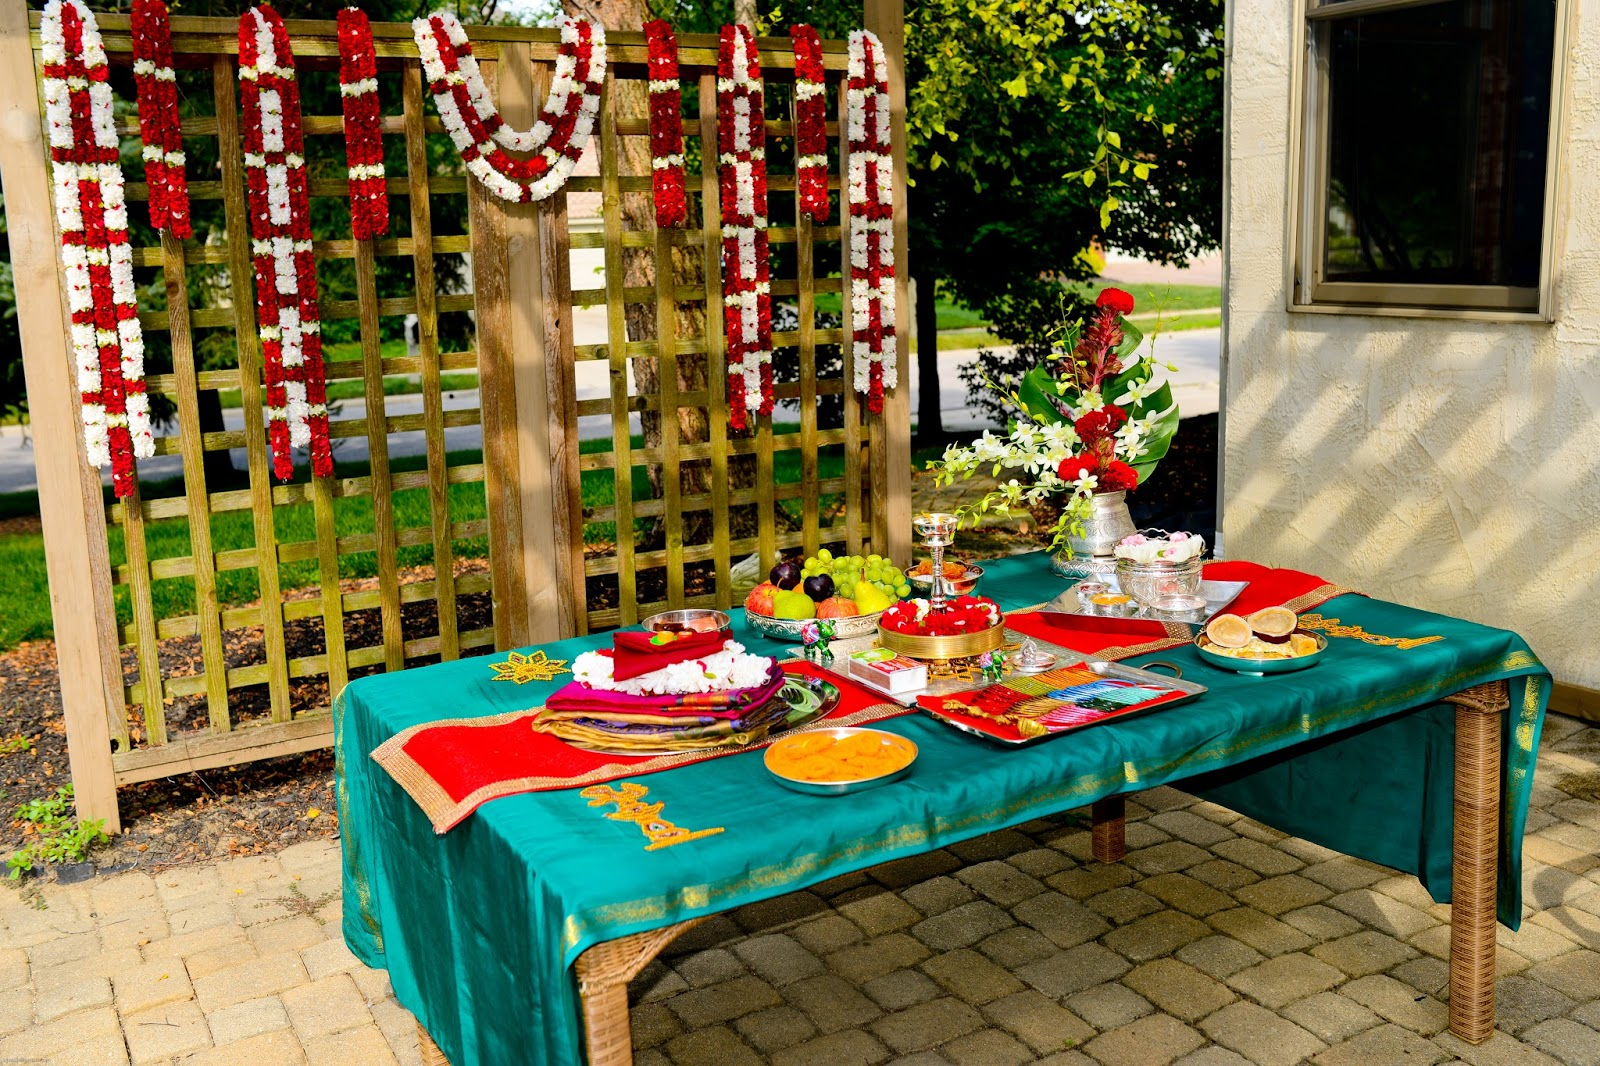 Aalayam Colors Cuisines And Cultures Inspired An Indian Sprinkle